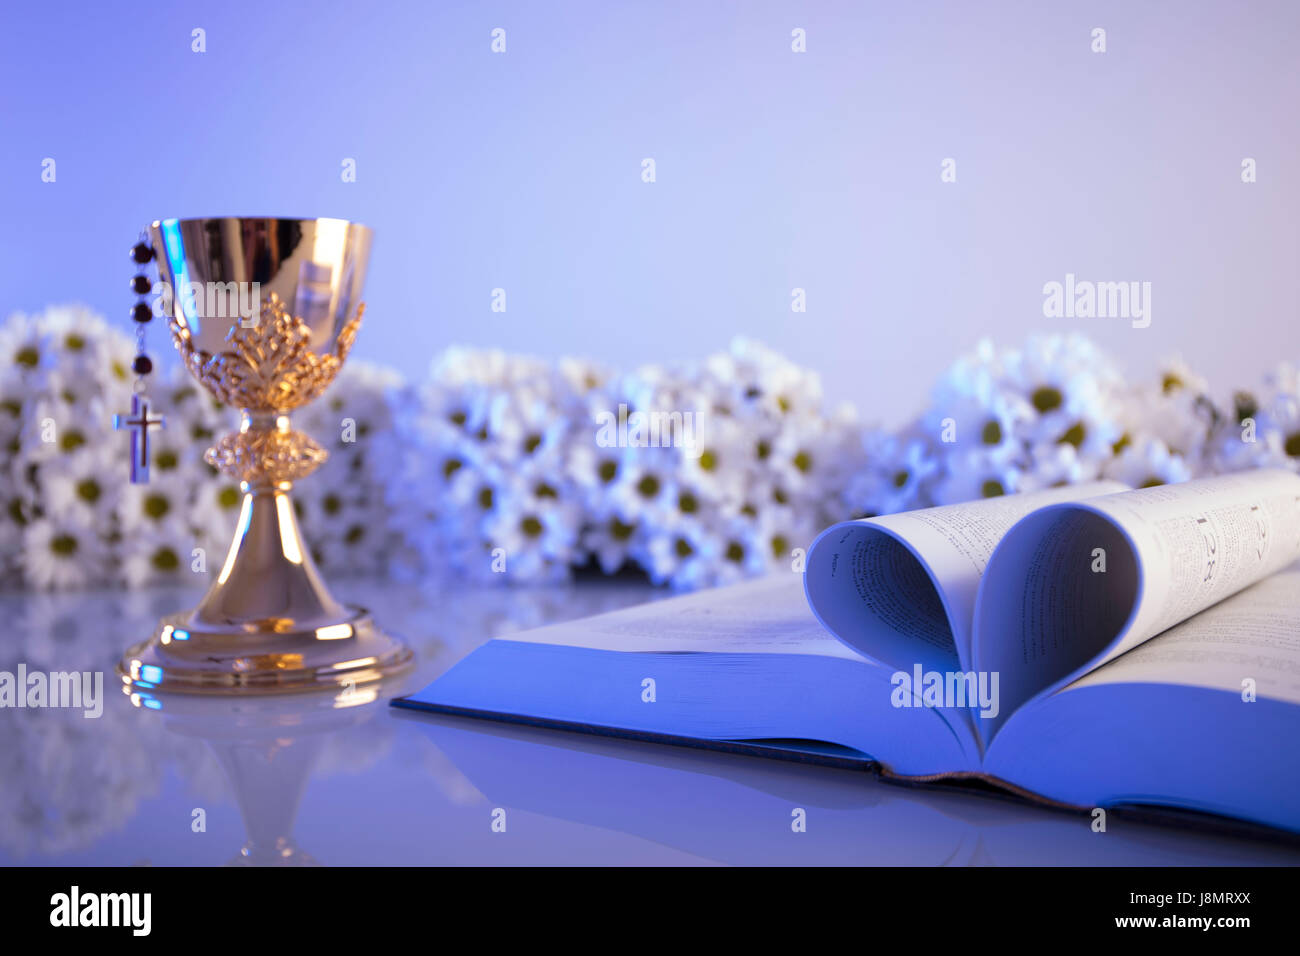 an analysis of the topic of the holy communion The lord's supper introduction observing the lord's supper, or communion keywords: communion, lord's supper, paul, sermon outline, padfield, cup, wine.